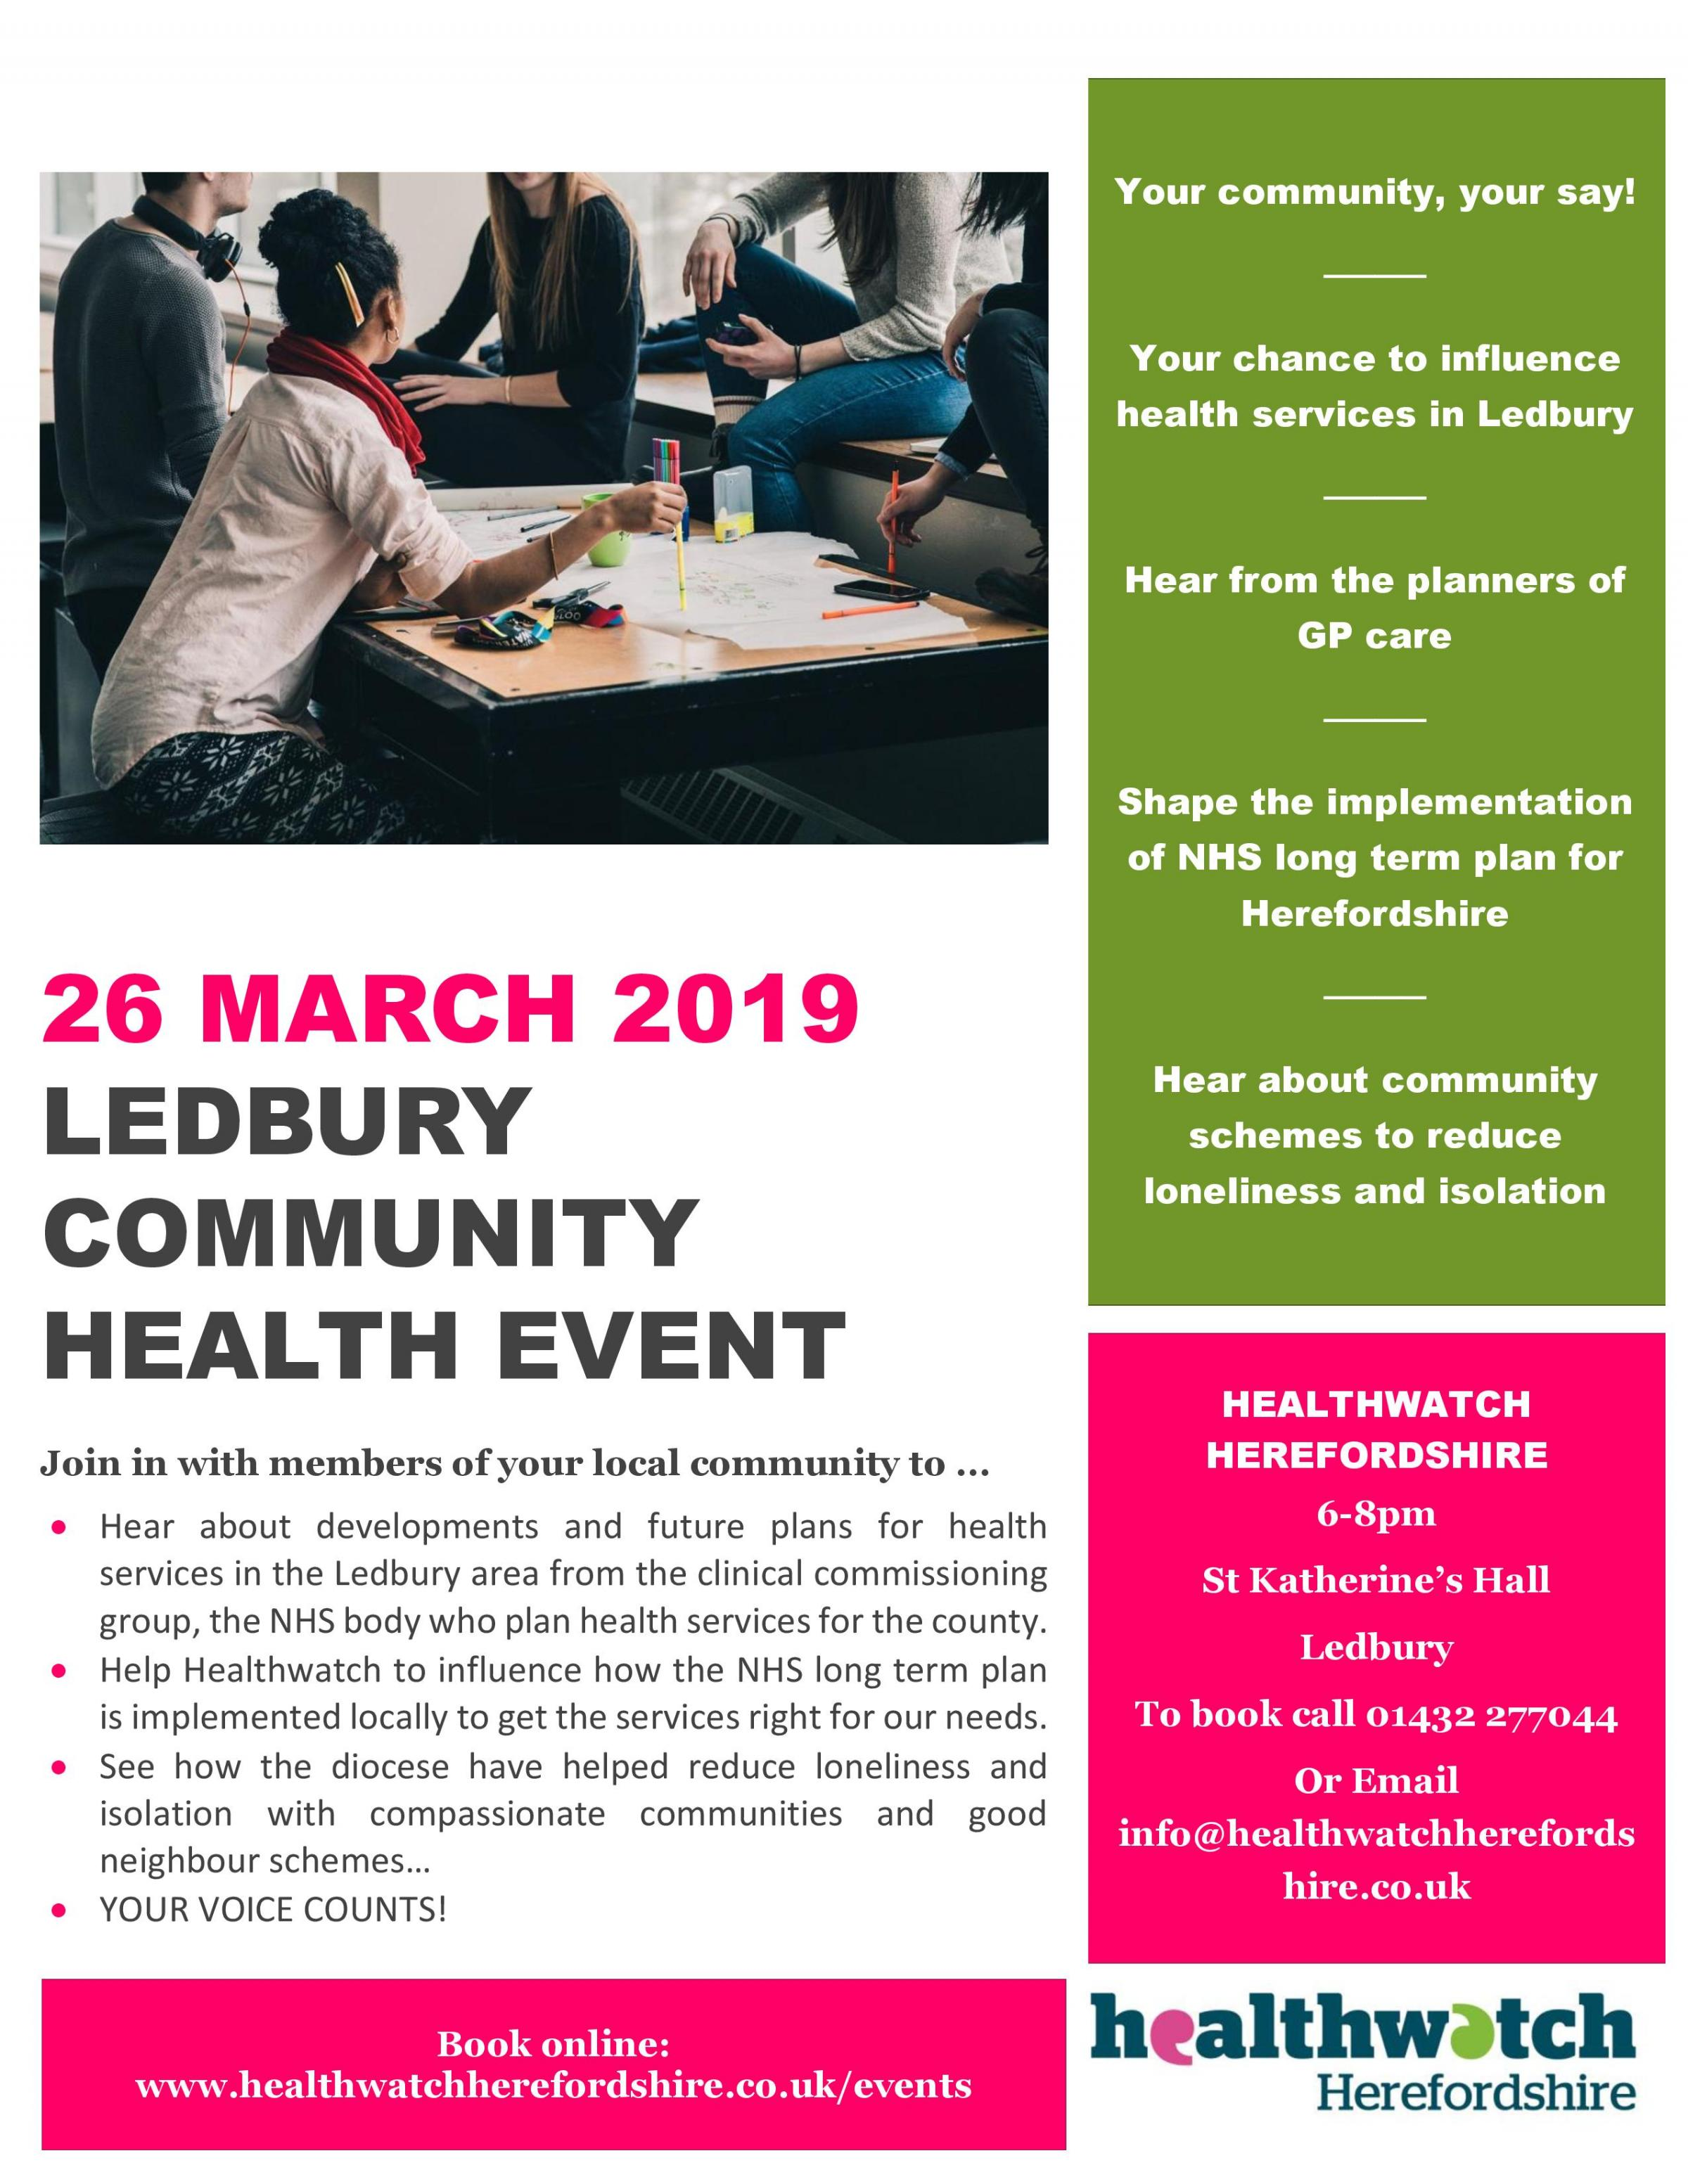 Ledbury Community Health Event